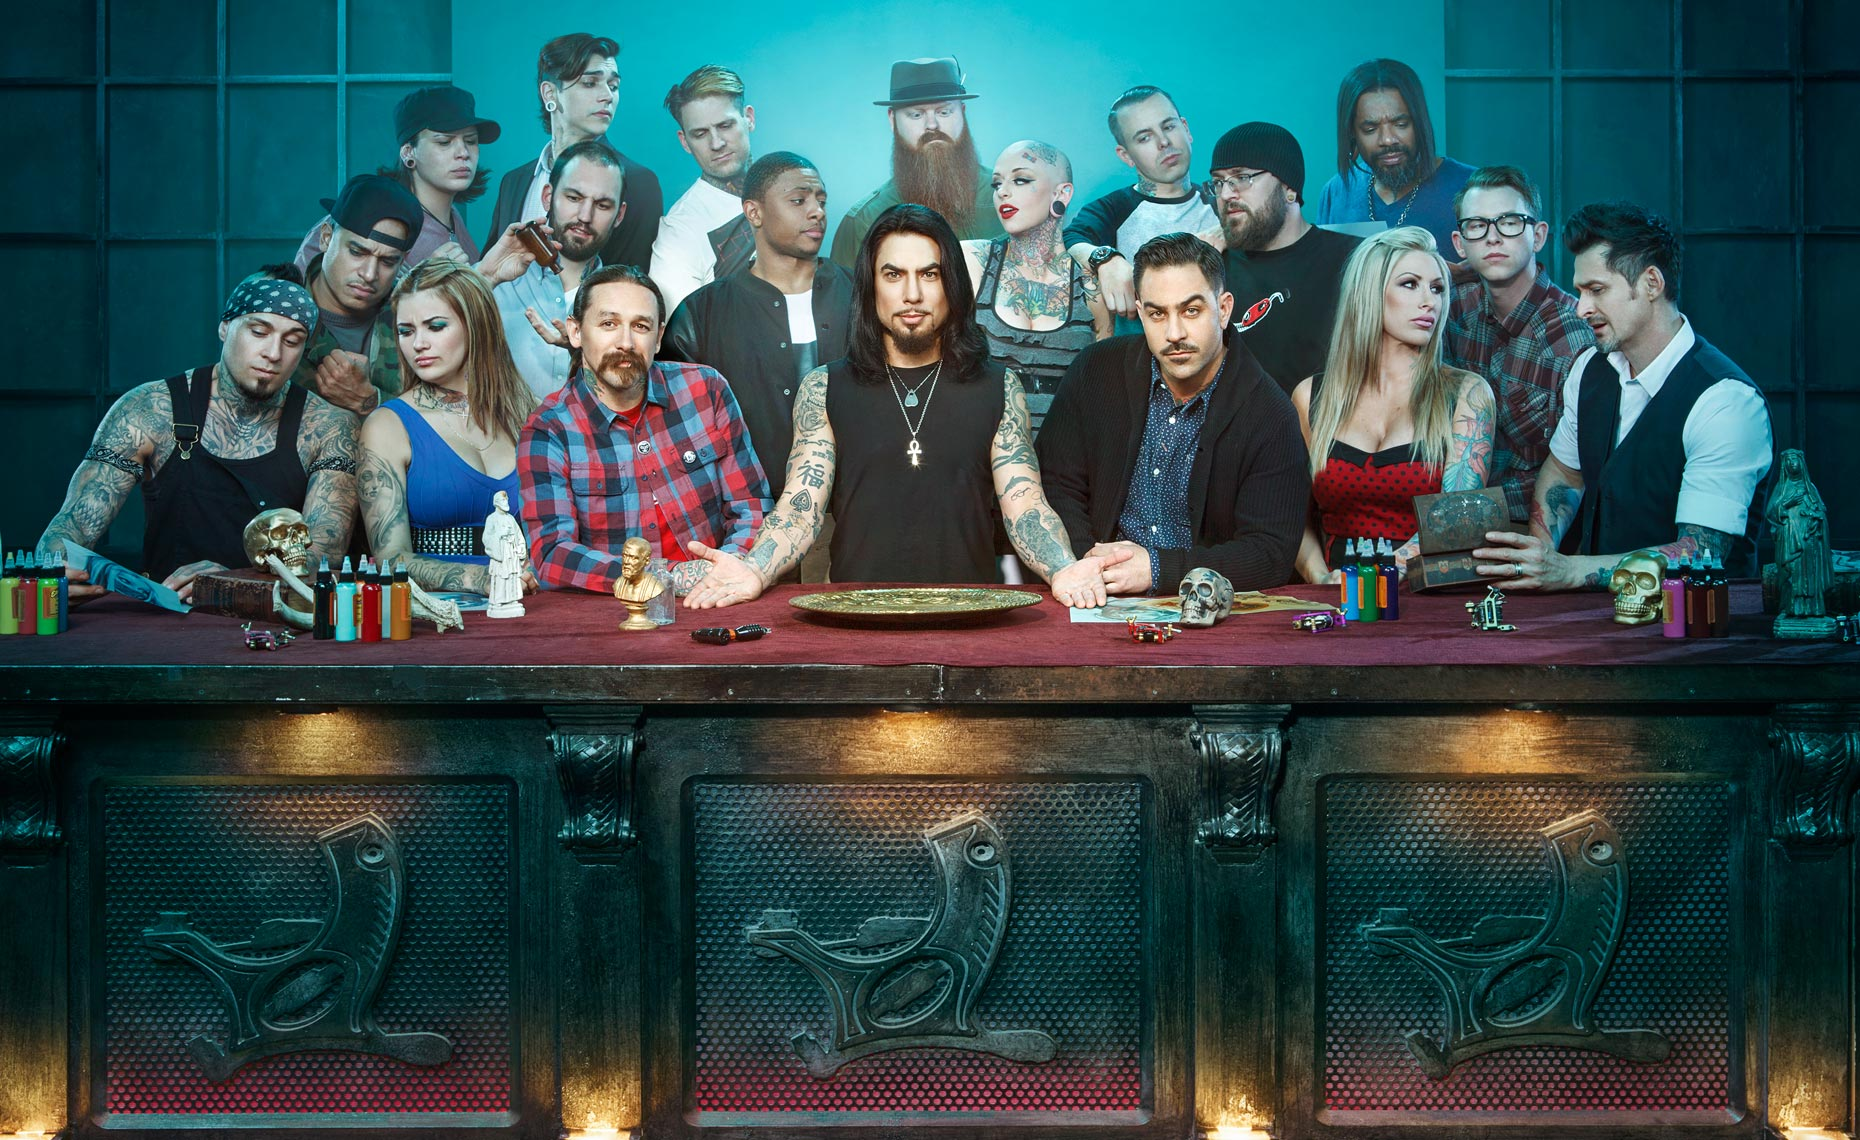 Ink Master, Season 3 for Spike TV with Host Dave Nevarro © Dale May